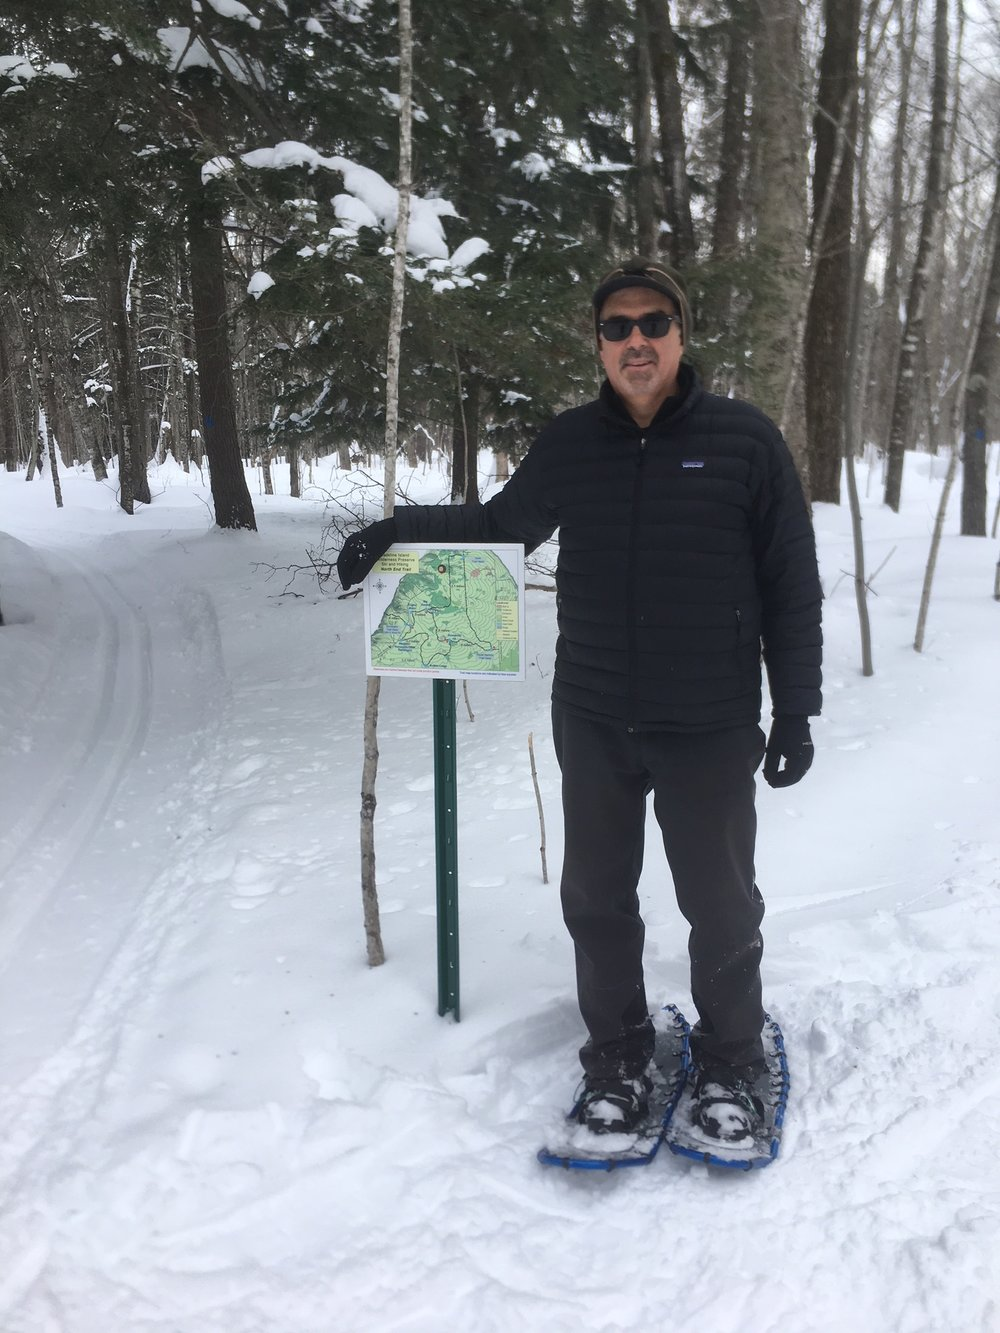 MIWP President, Fred Koerschner, snowshoeing the Preserve's North End Trails